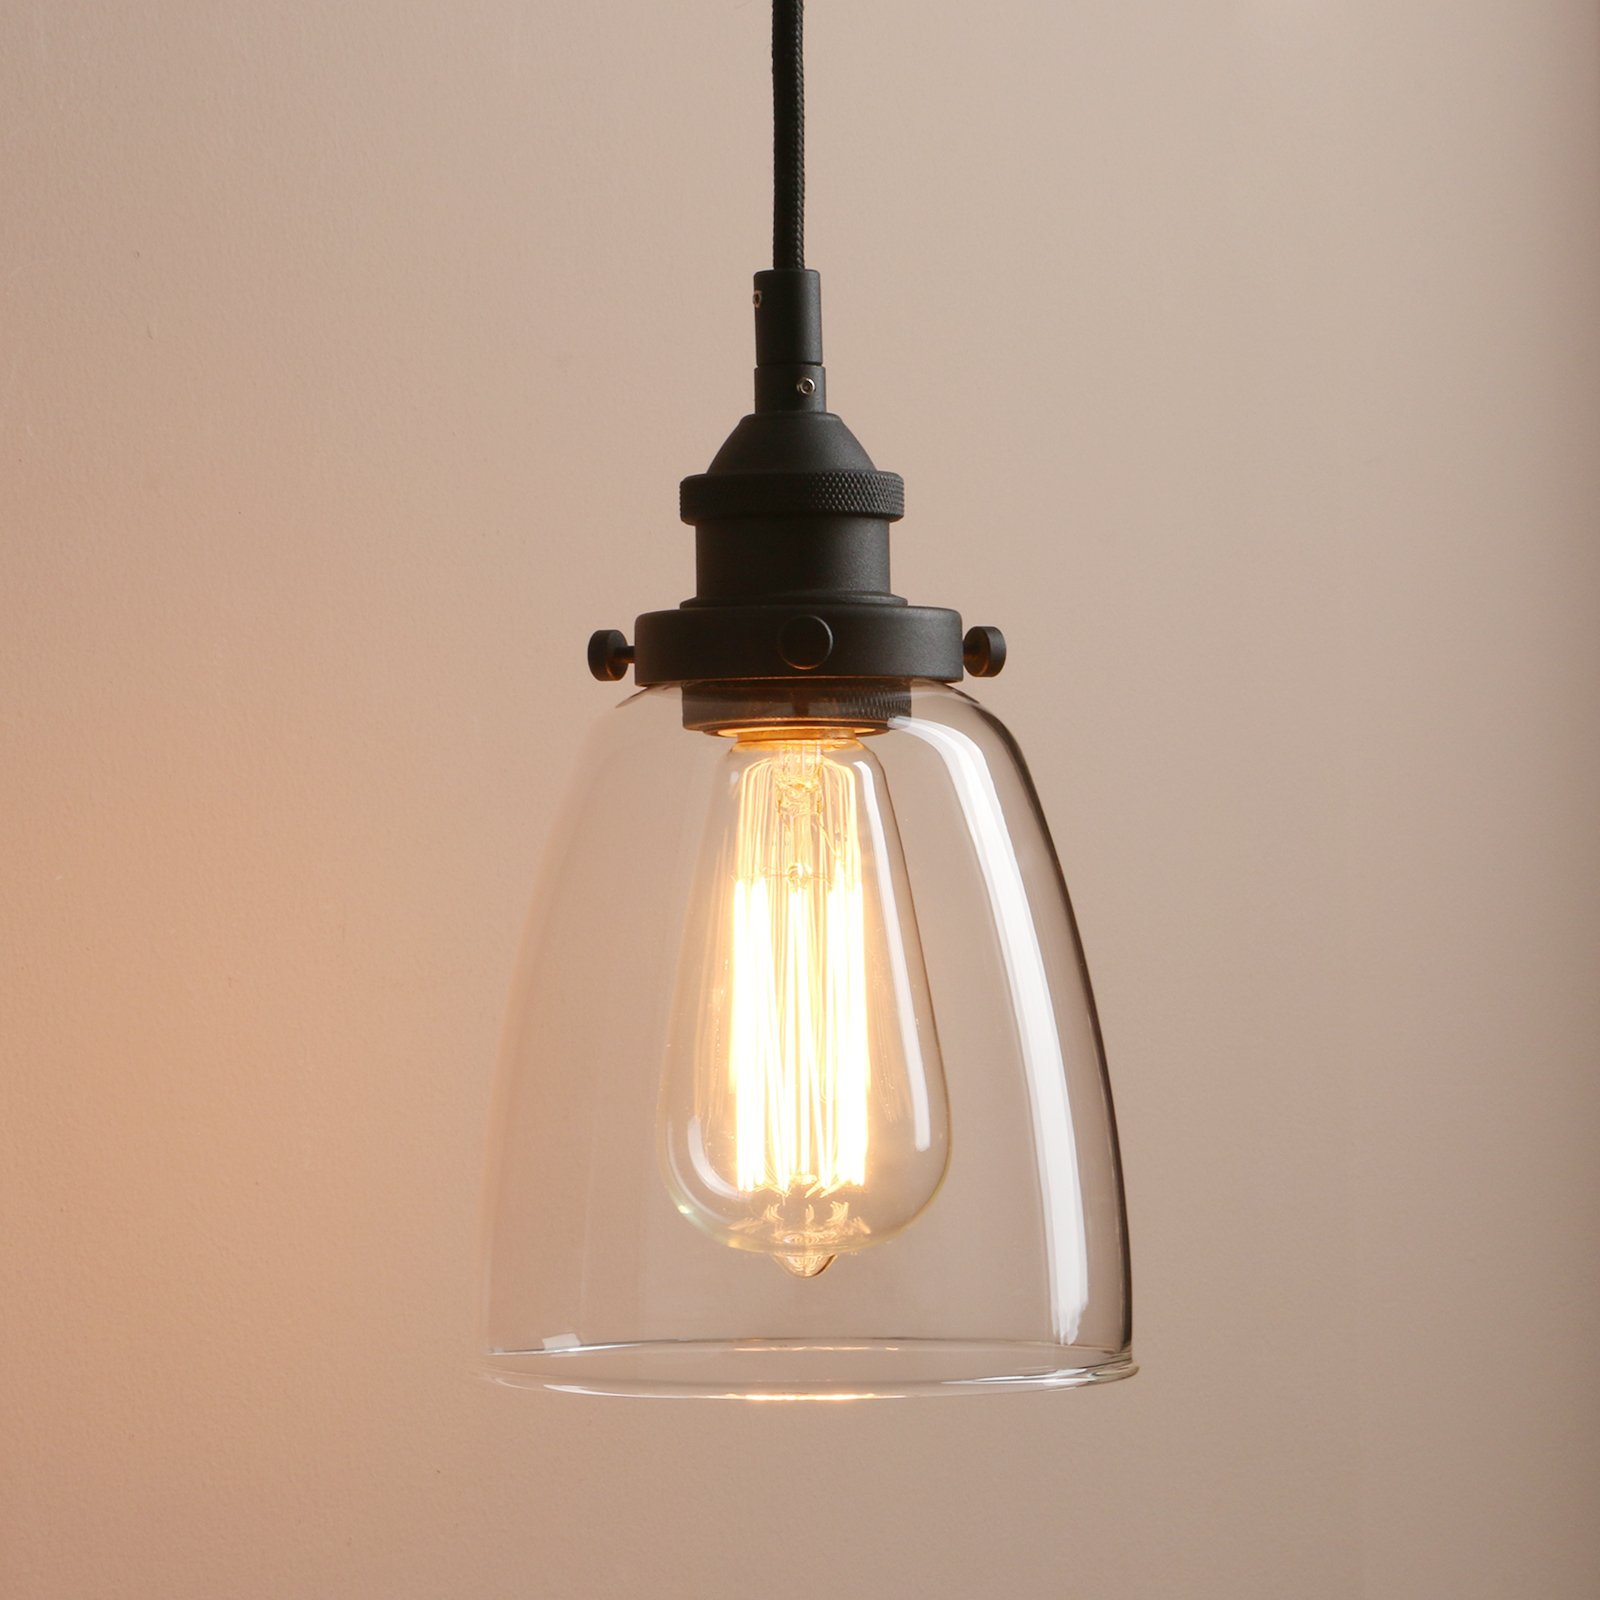 Pathson Retro Pendant Lighting, Industrial Small Hanging Light with Clear Glass and Textile Cord, Adjustable Kitchen Lamp for Hotels Hallway Shops Cafe Bar Flush Mount Ceiling Light Fixtures by Pathson